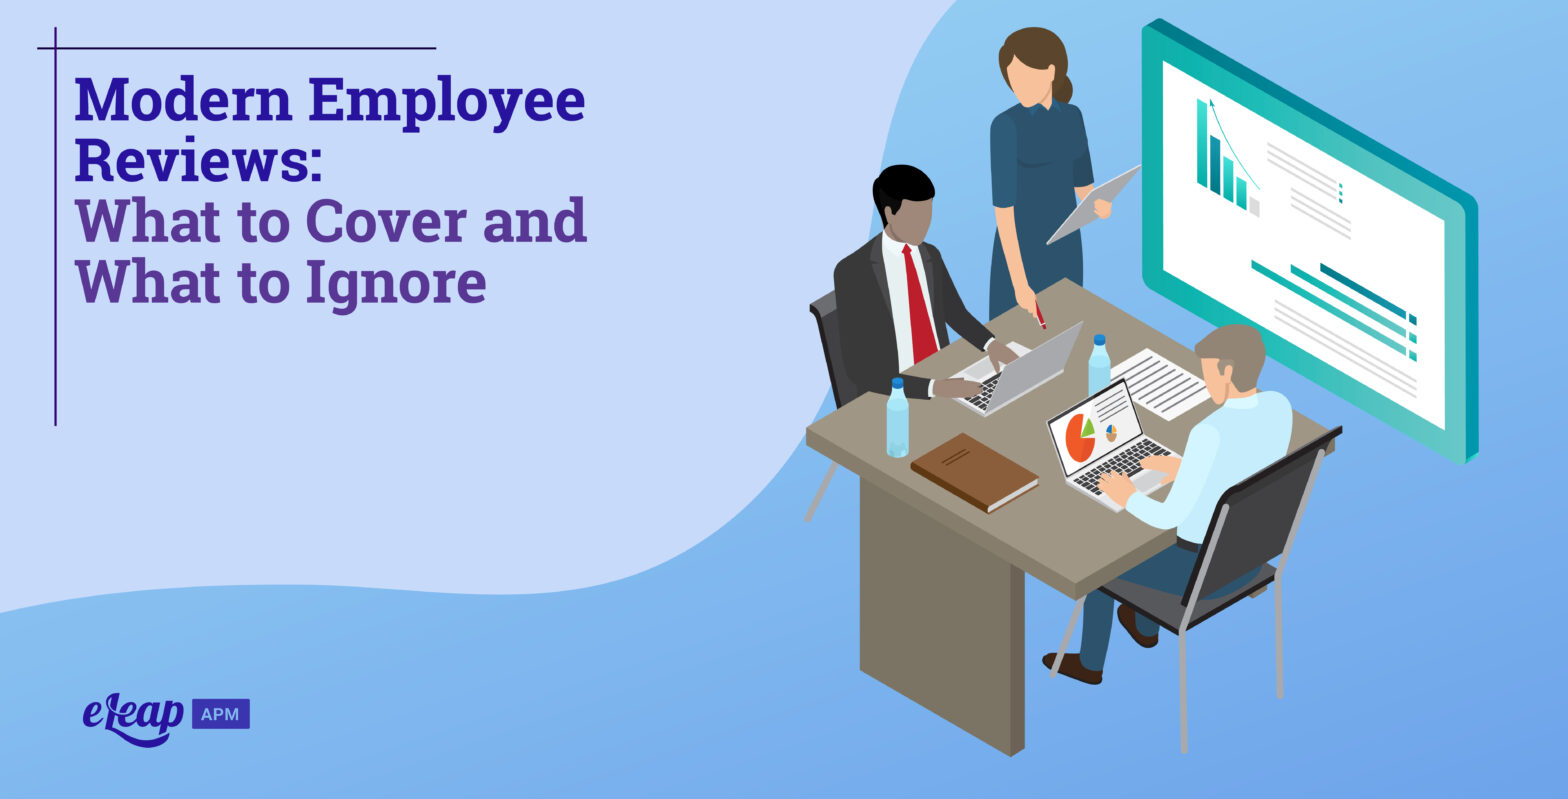 Modern Employee Reviews: What to Cover and What to Ignore